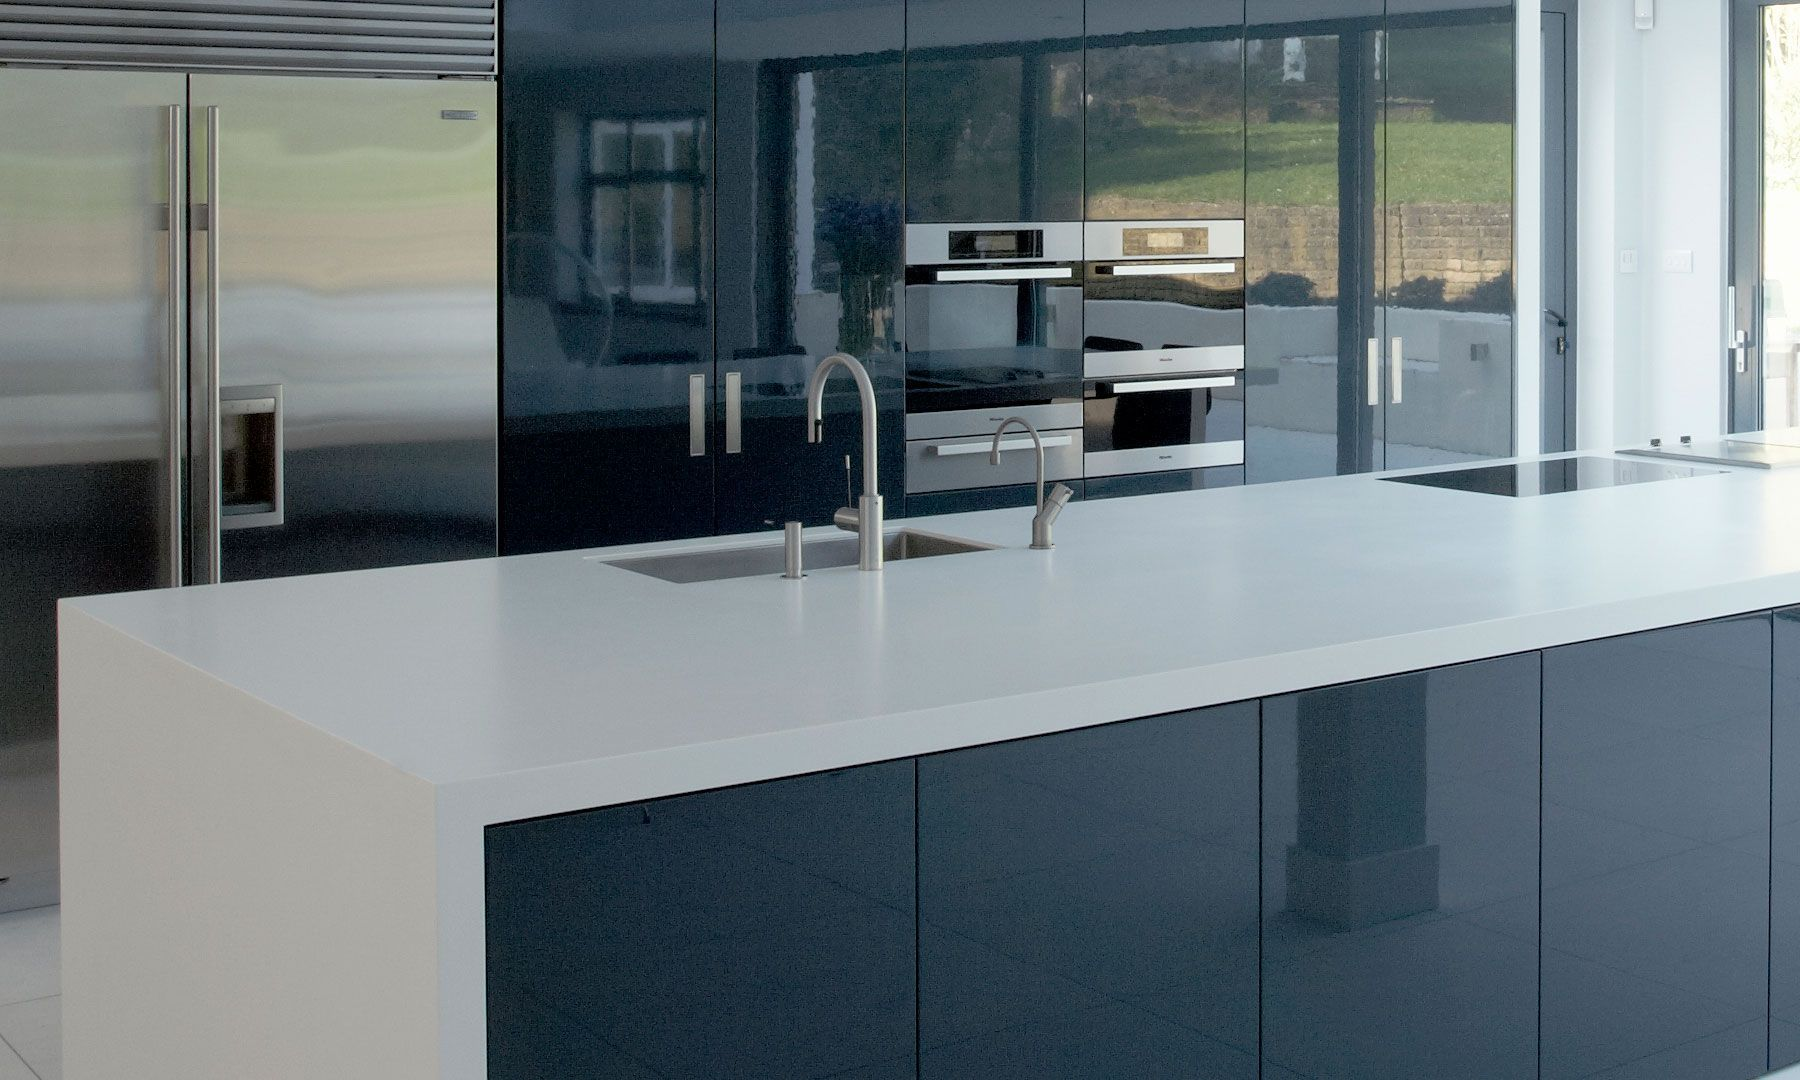 contemporary-kitchens-high-gloss-lacquered-86846-4506647.jpg 1,800 ...